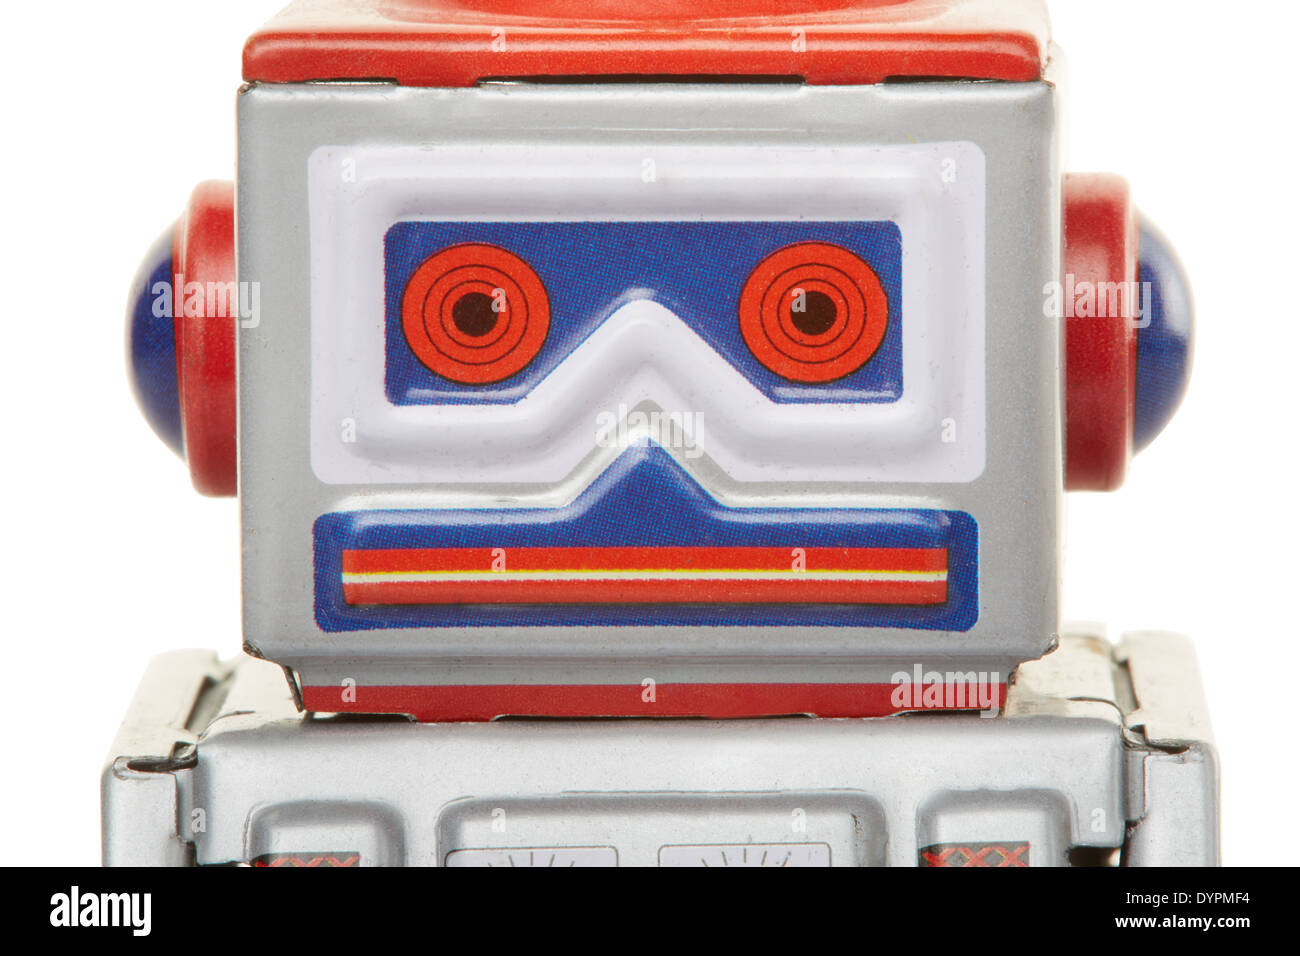 Robot vintage toy close up - Stock Image